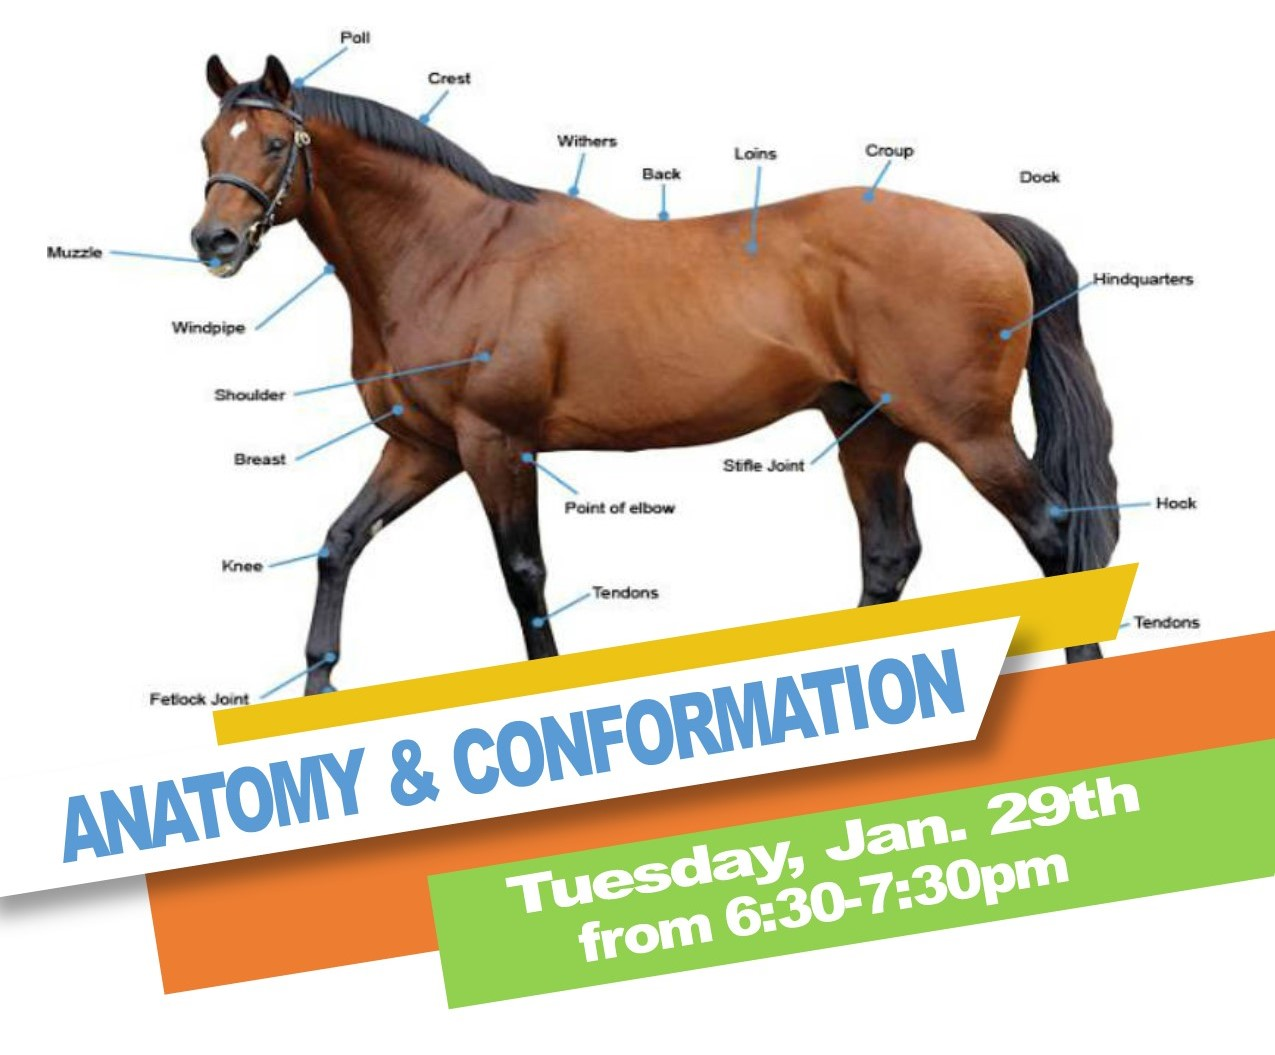 Equine Anatomy & Confirmation image.jpg